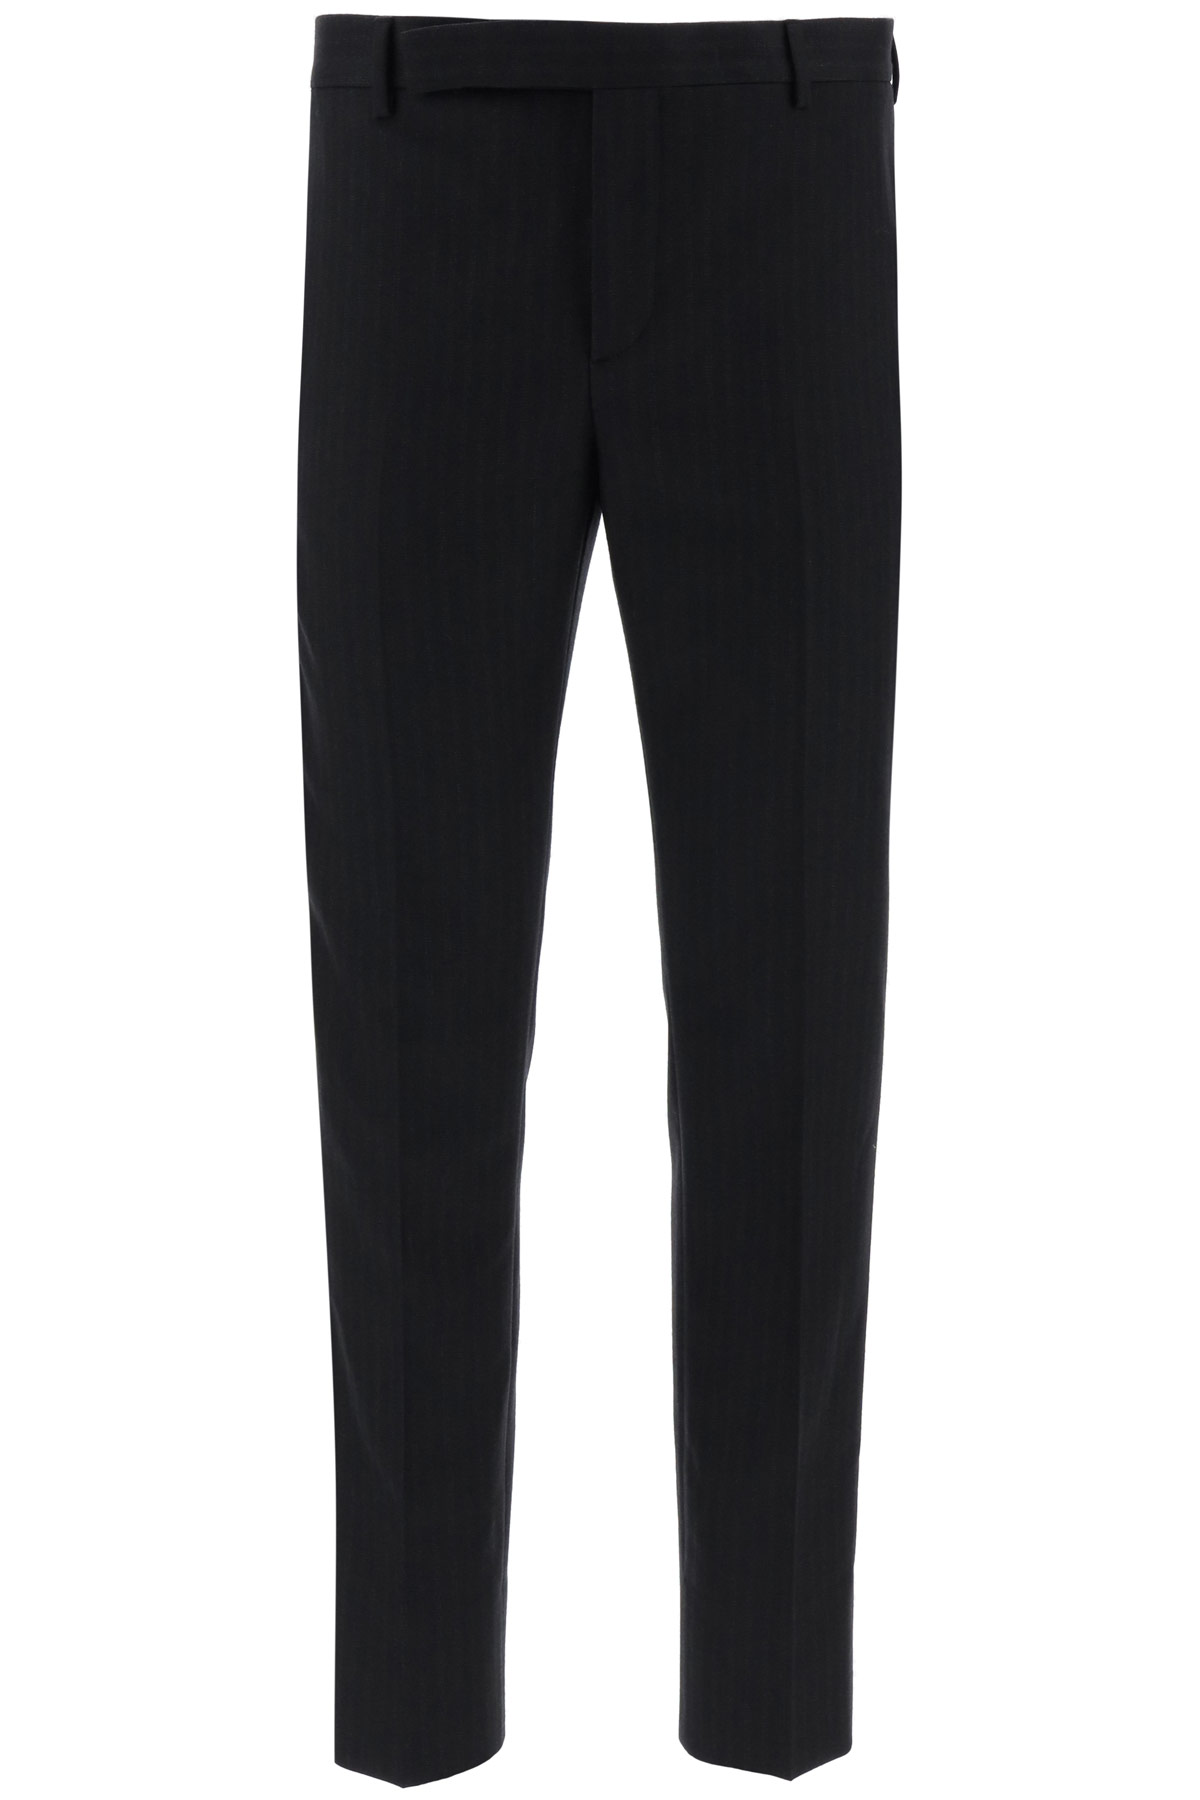 SAINT LAURENT PINSTRIPED TAILORED TROUSERS 50 Black, Grey Wool